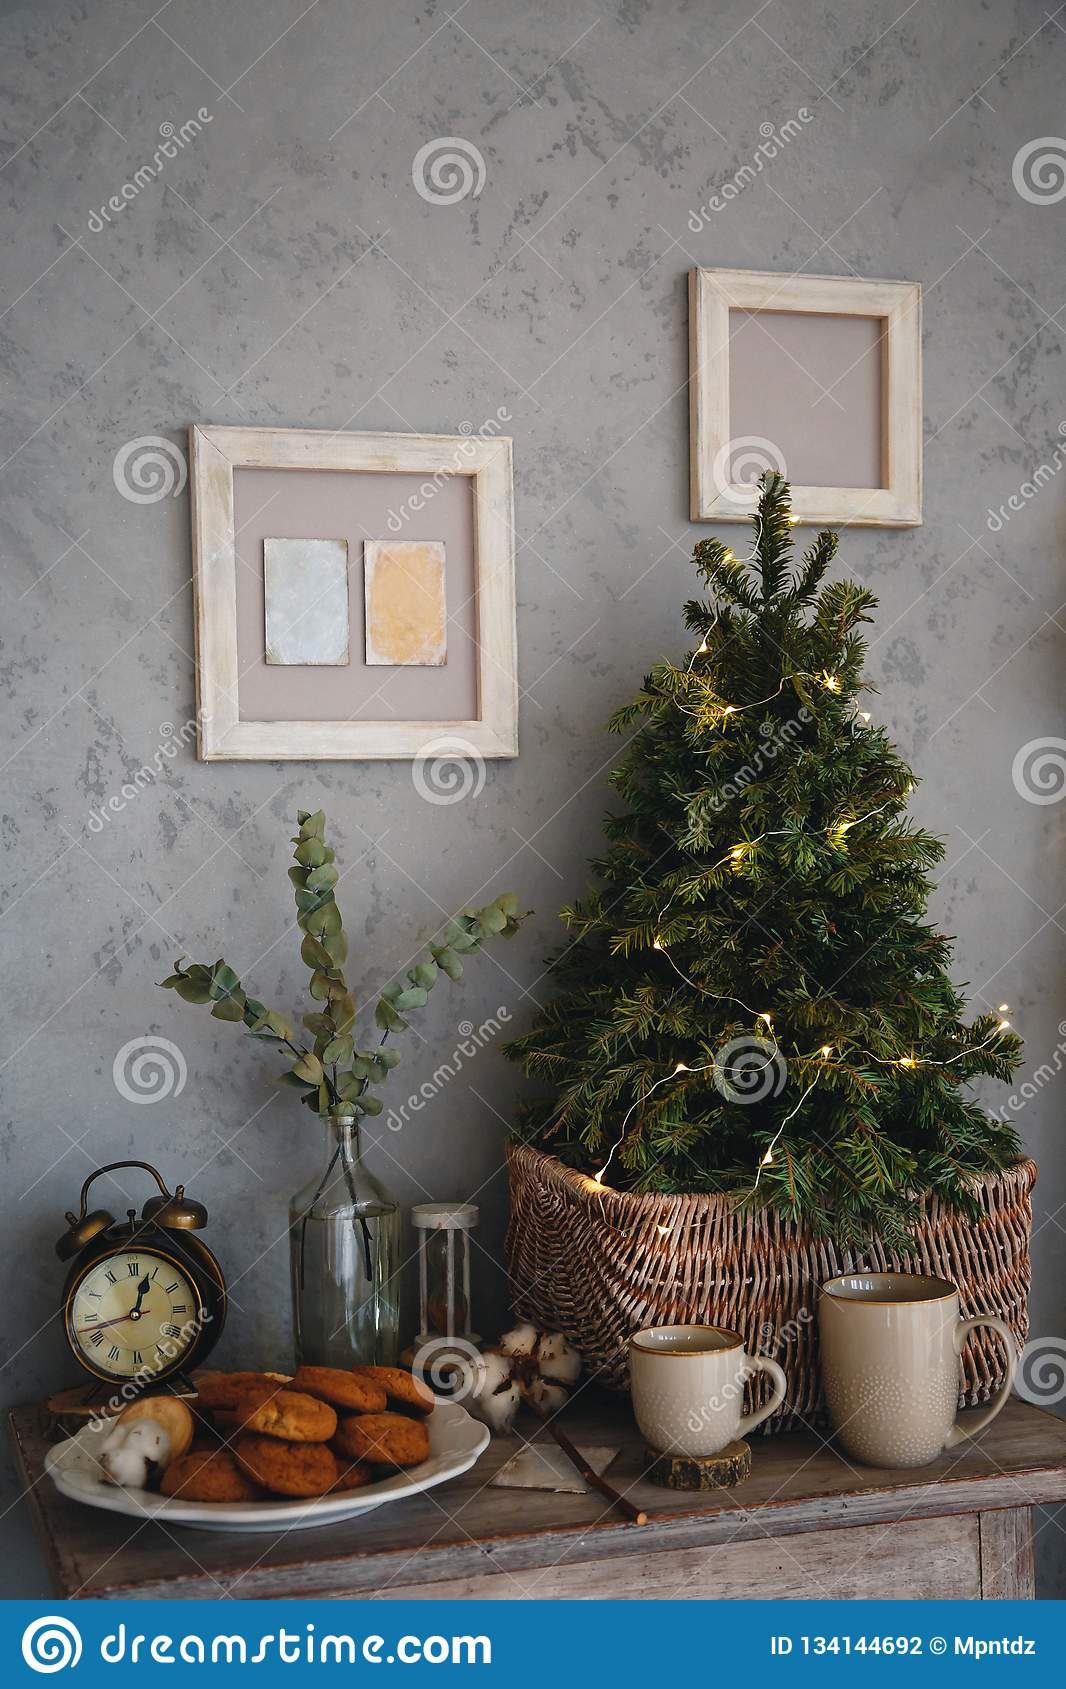 Small Real Christmas Tree With Yellow Christmas Lights Loft Style Modern Design Room In Light Colors Decorated For Stock Photo Image Of Cookies Decoration 134144692